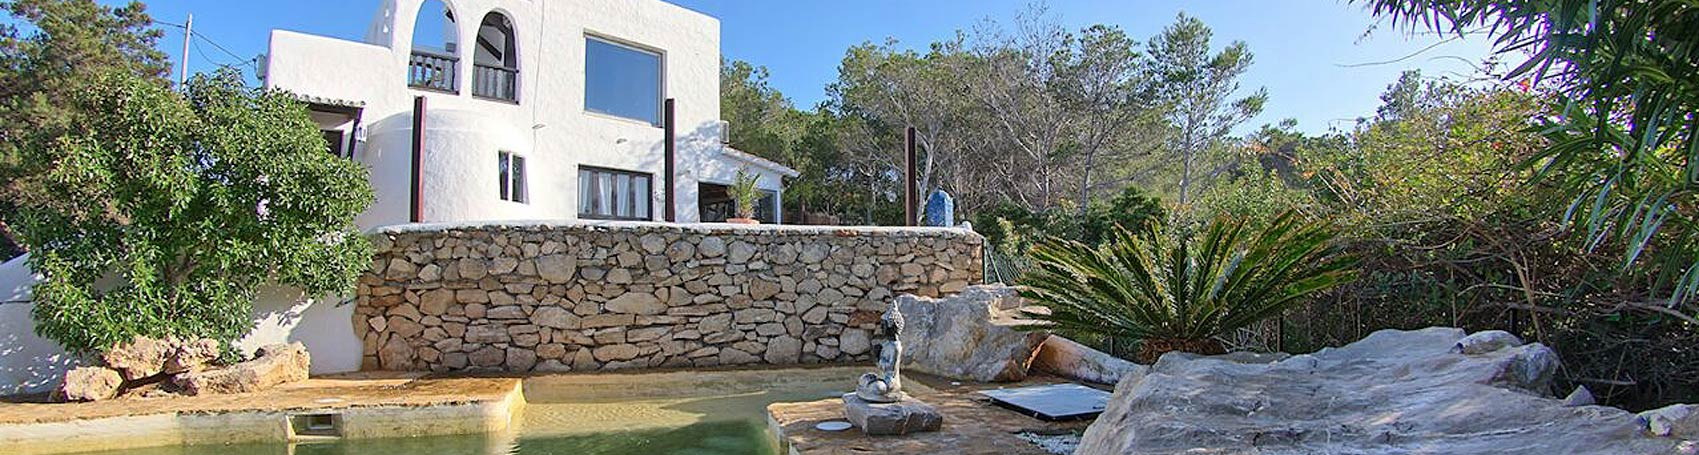 Sale of luxury villas and apartments in Ibiza. Advice and management in the purchase of villas Ibiza. VIP services in Ibiza. Consulting Services Ibiza